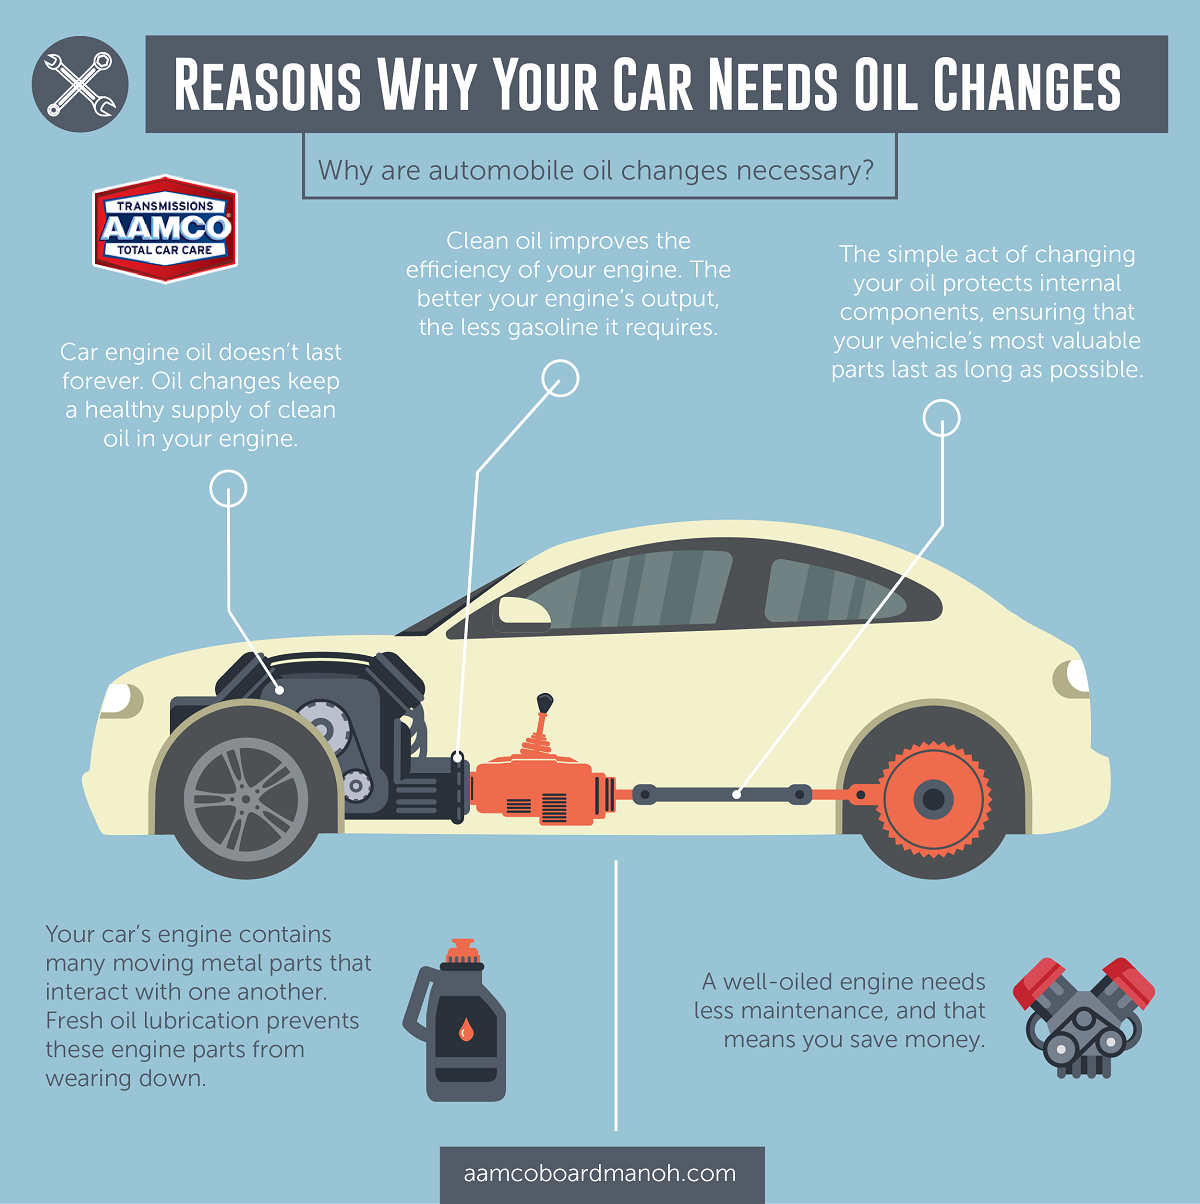 Reasons Why Your Car Needs Oil Changes